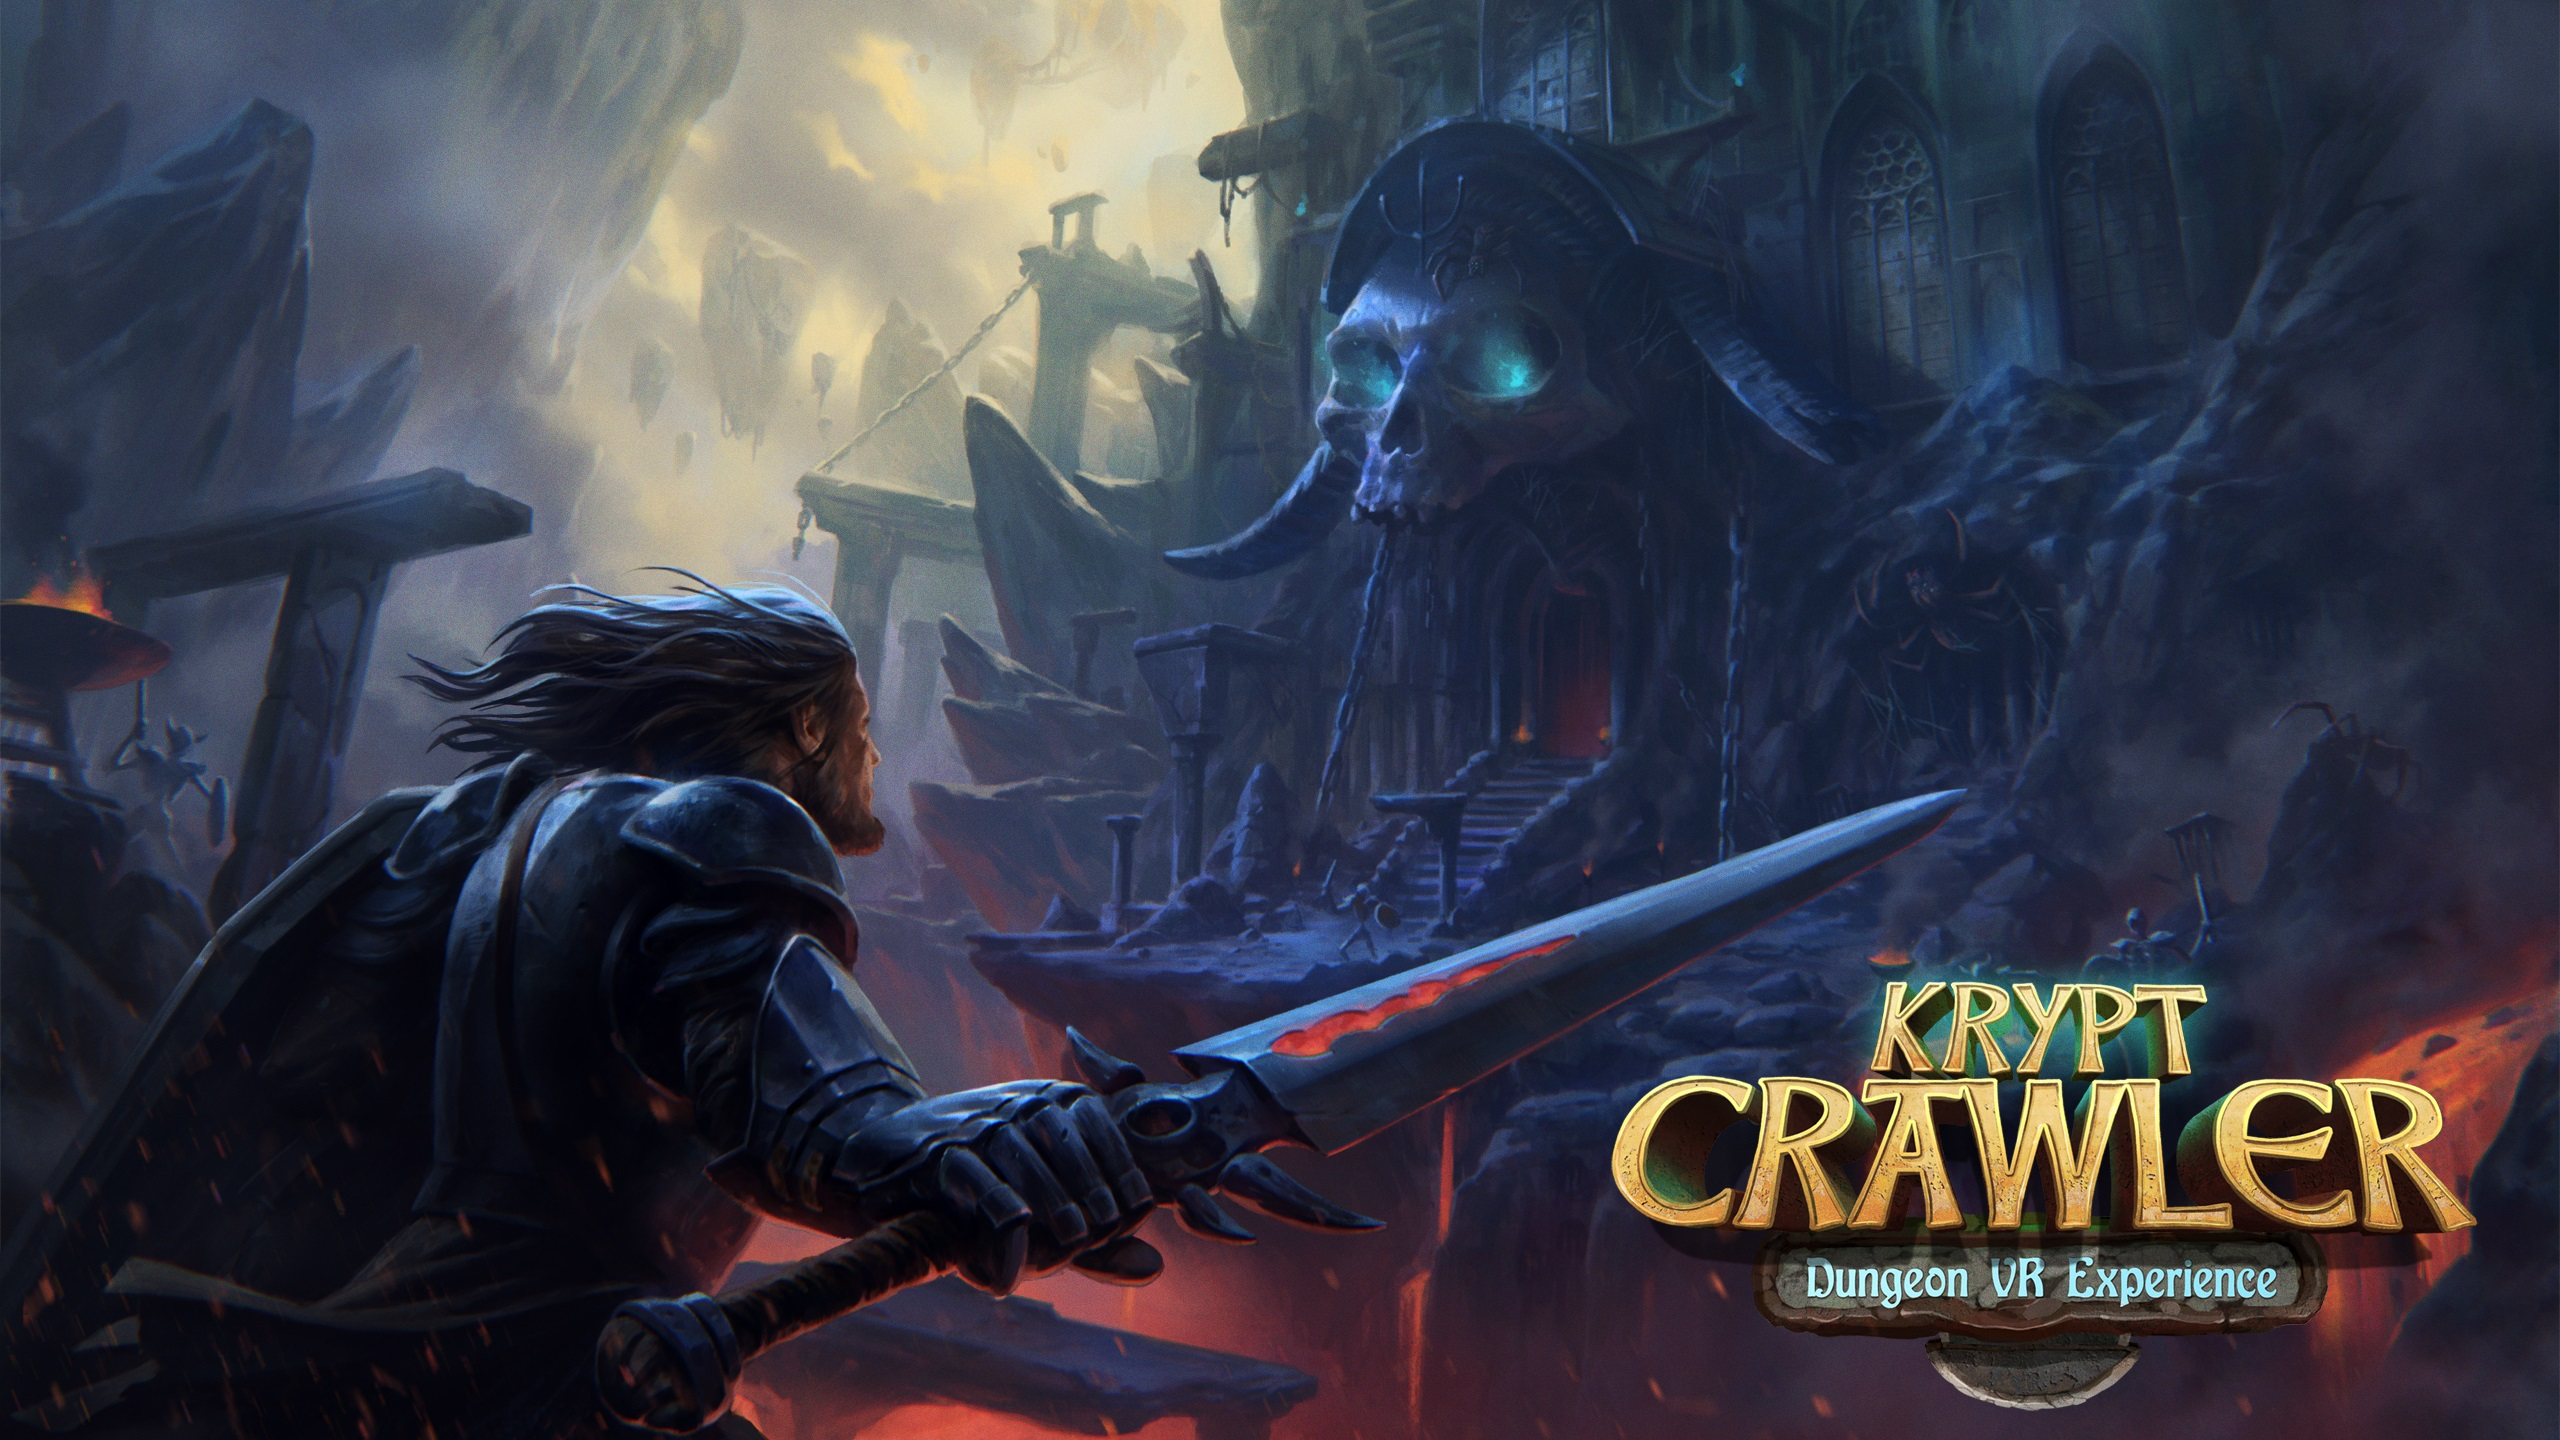 kryptcrawler � an immersive vr dungeon experience